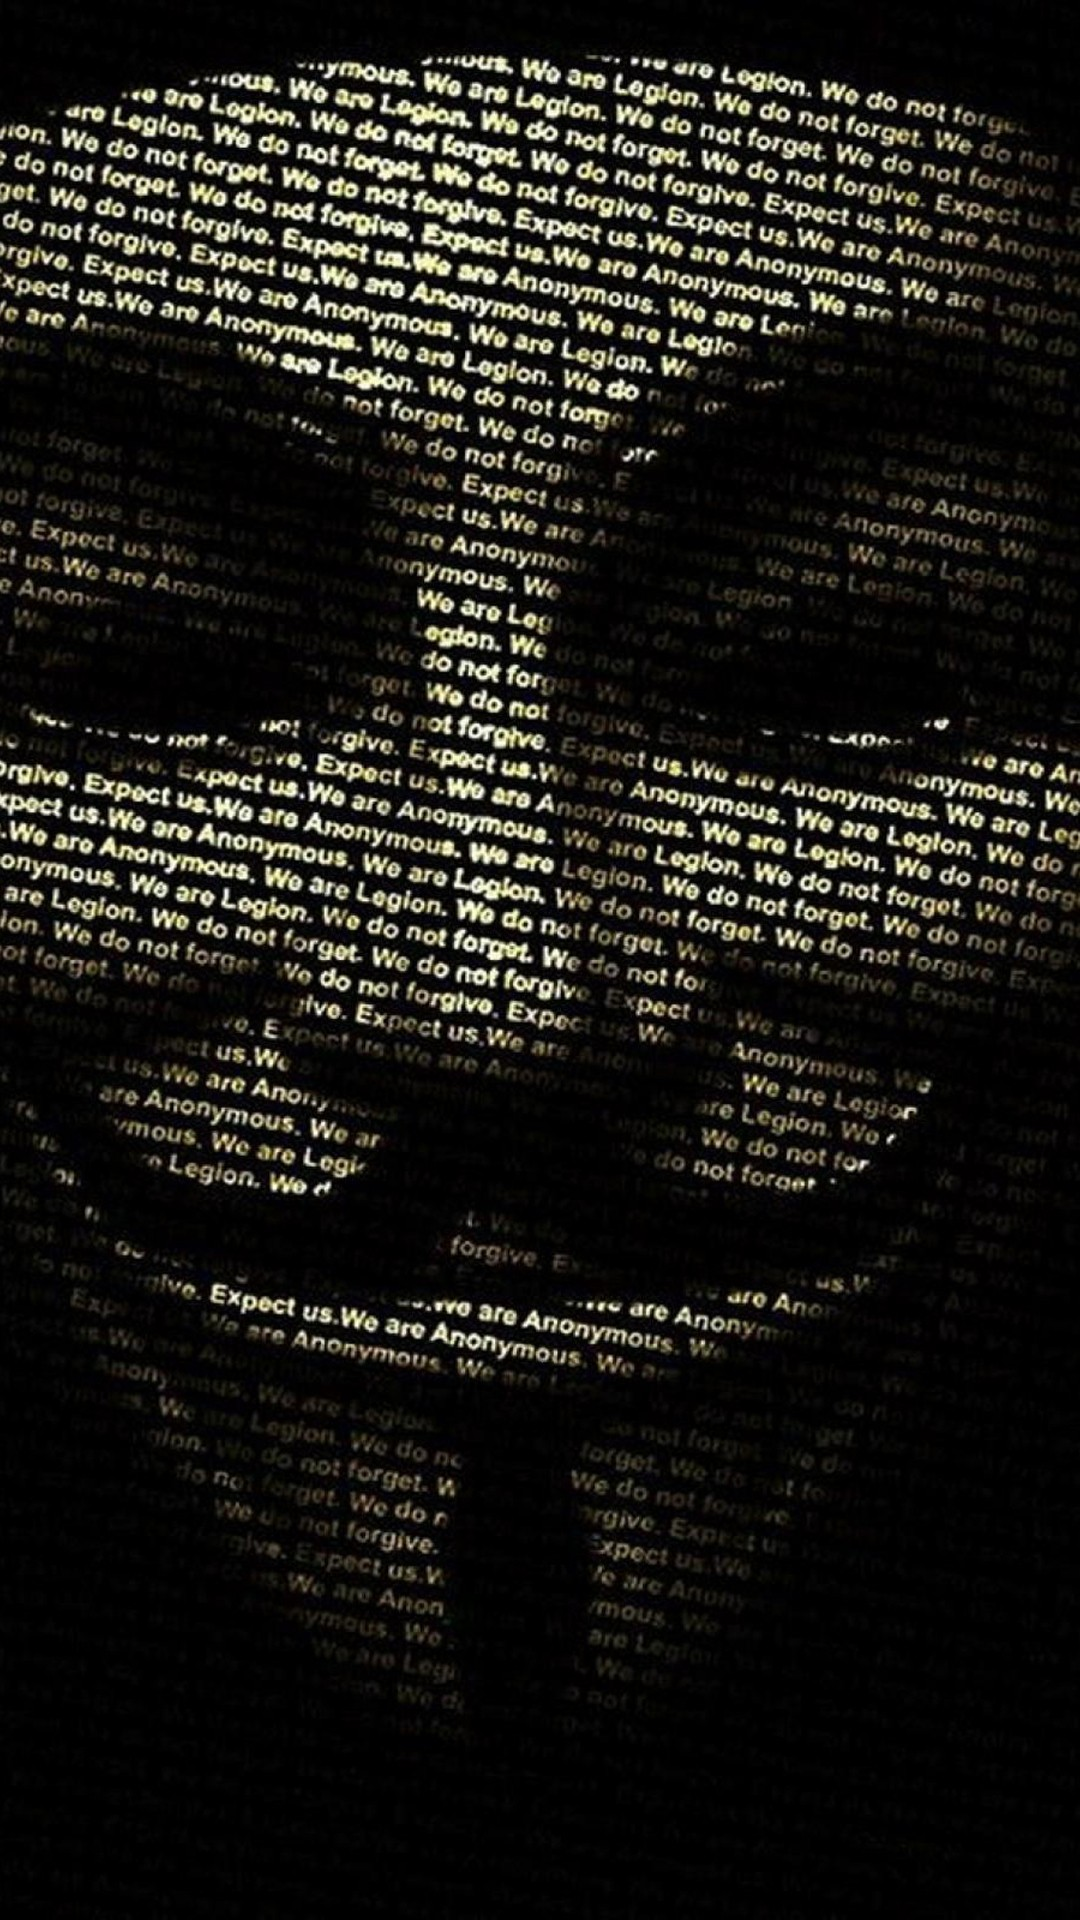 Free Download Anonymous Wallpaper Full Hd For Iphone Desktop